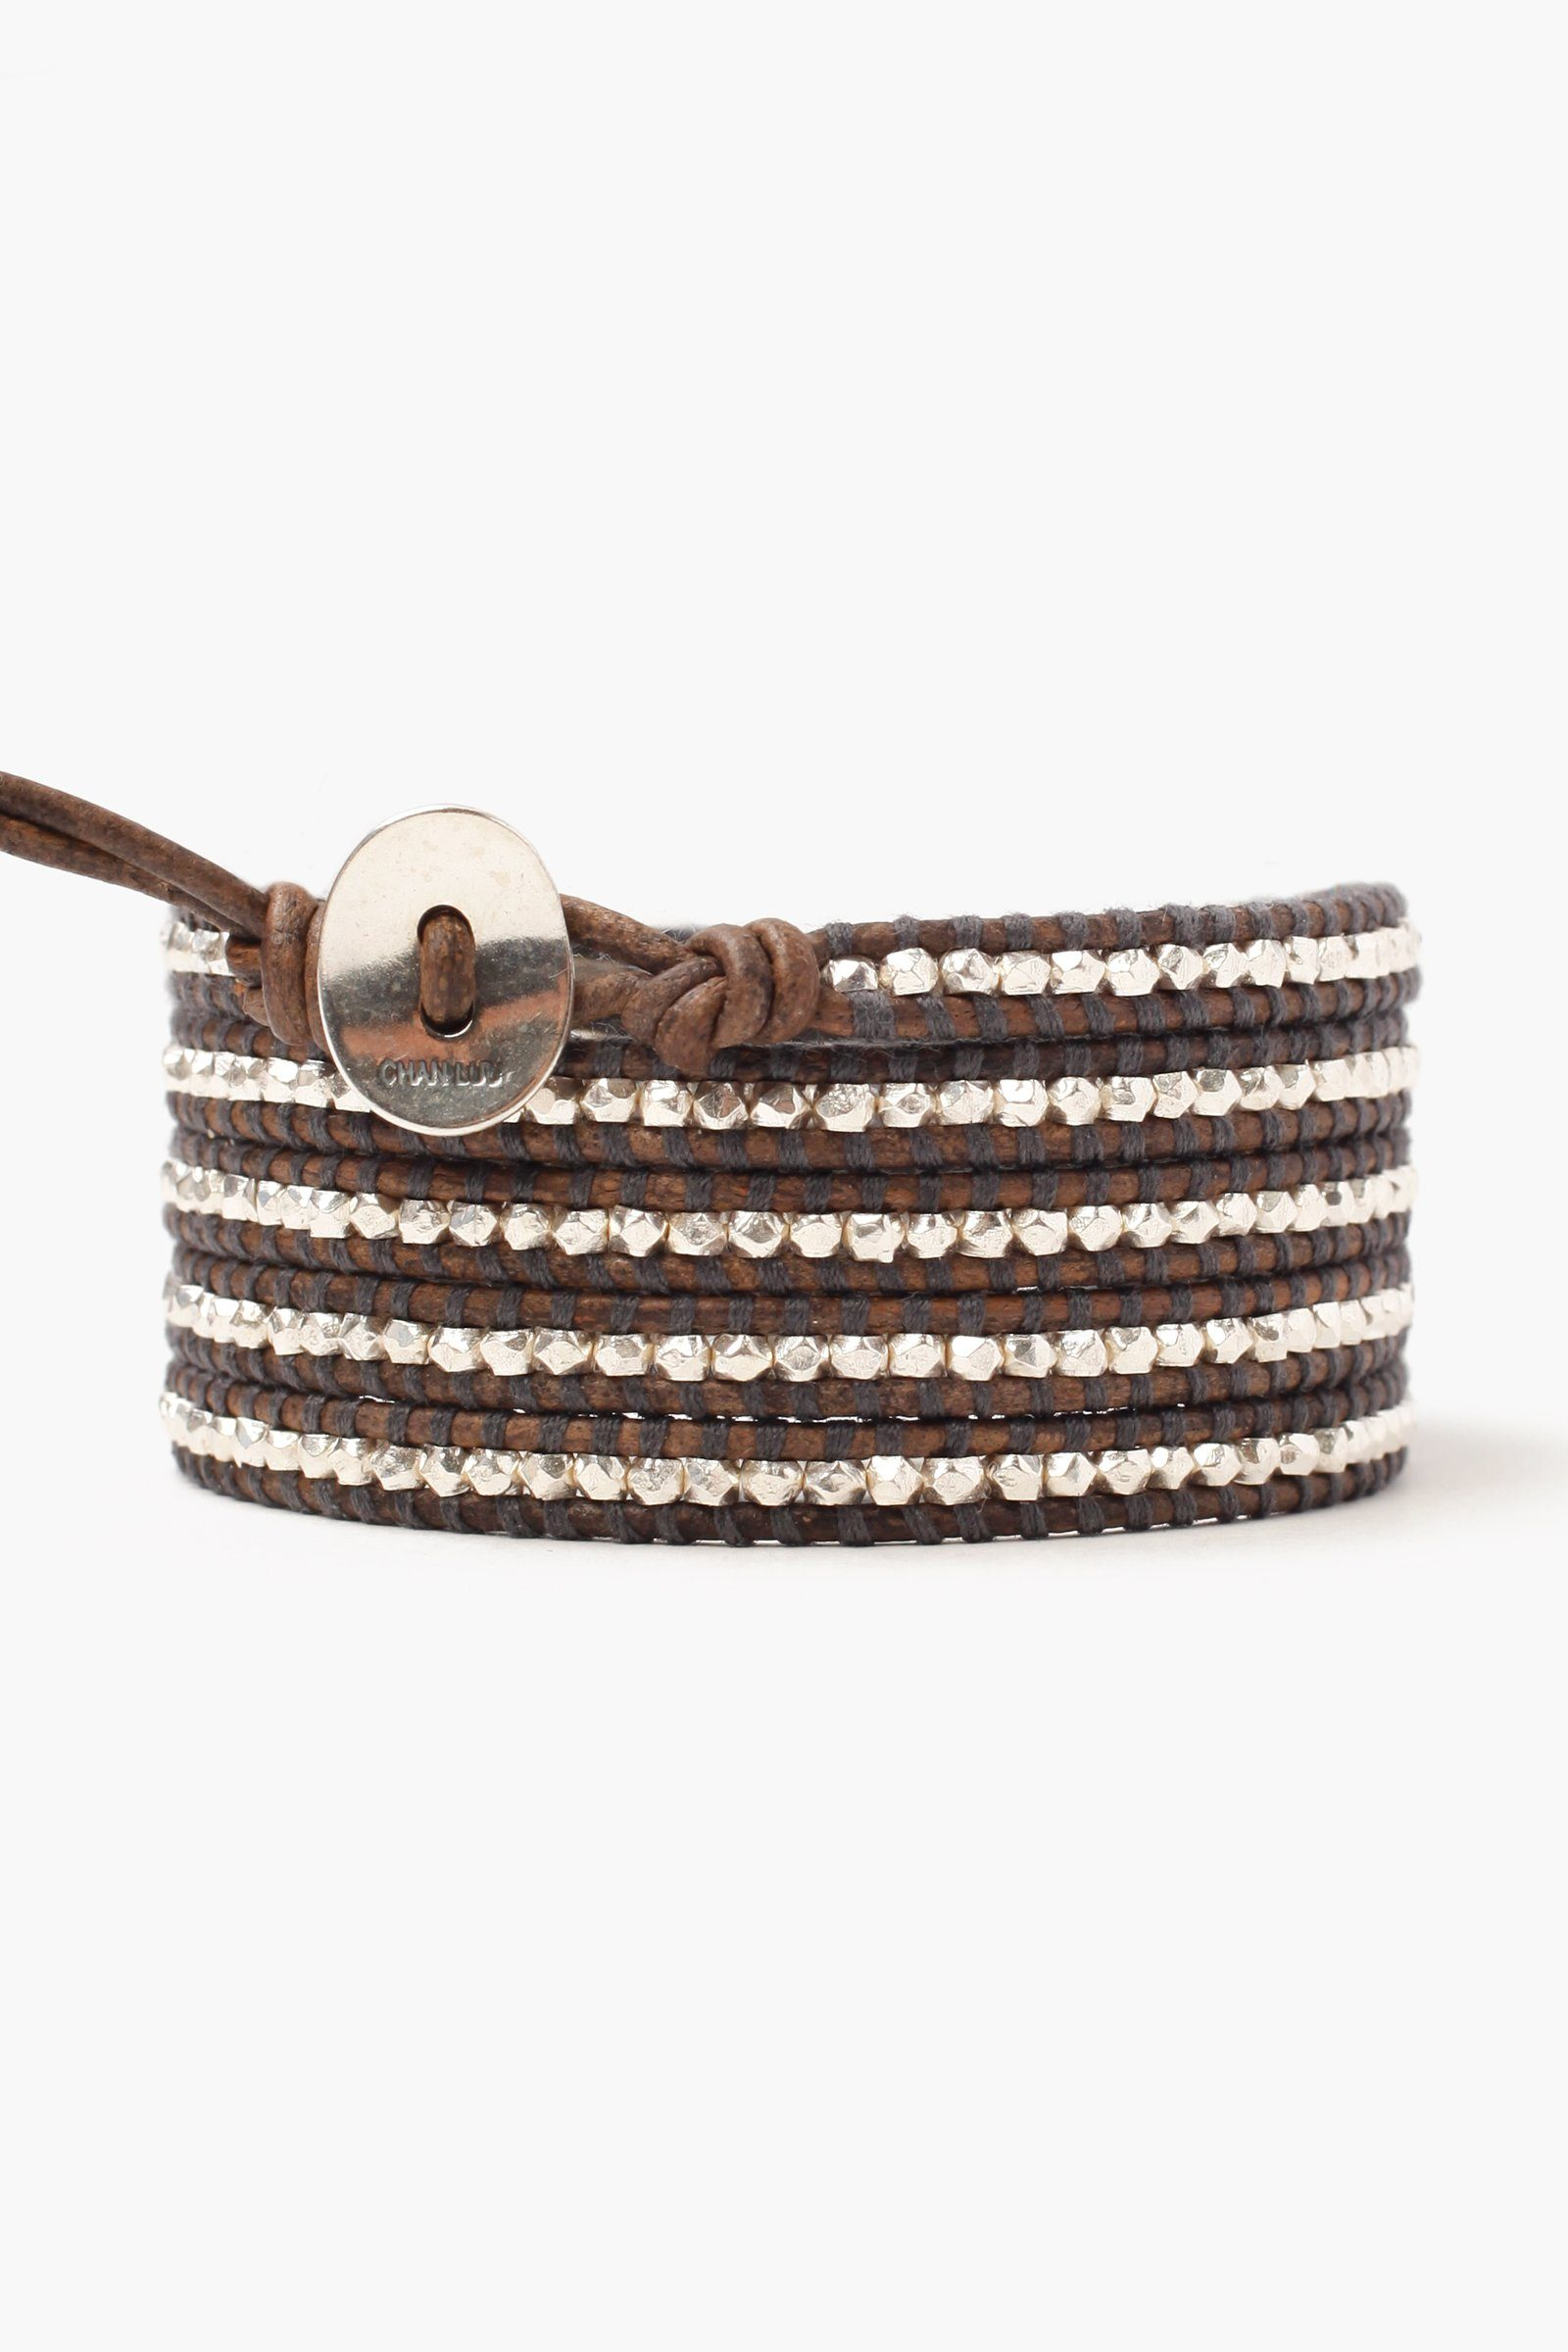 Sterling Silver Nugget Five Wrap Bracelet on Natural Grey Leather